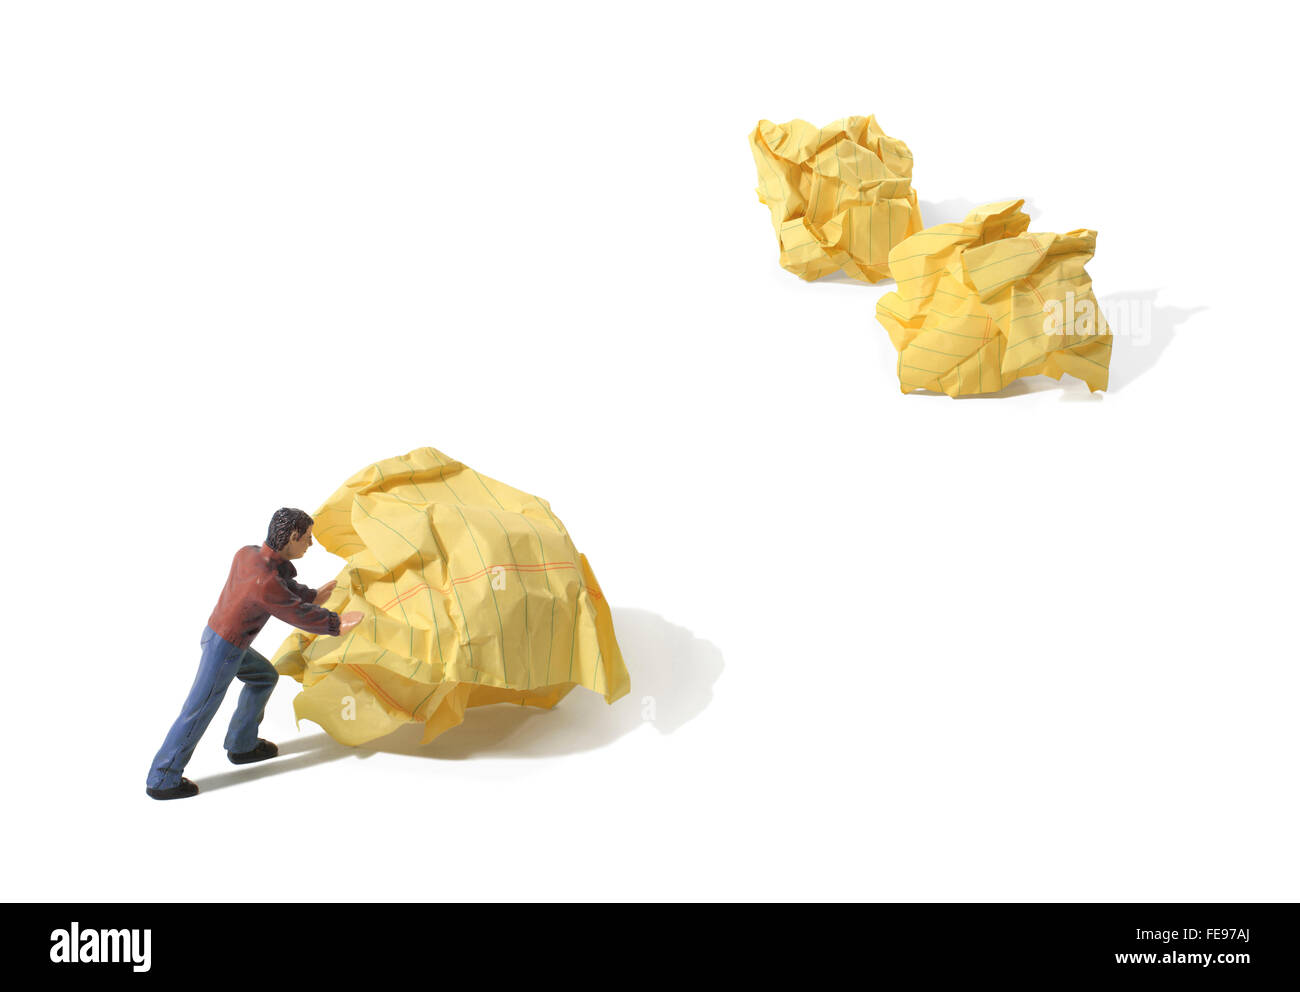 Figure Pushing a Yellow Crumpled Paper Wad on a White Background - Stock Image